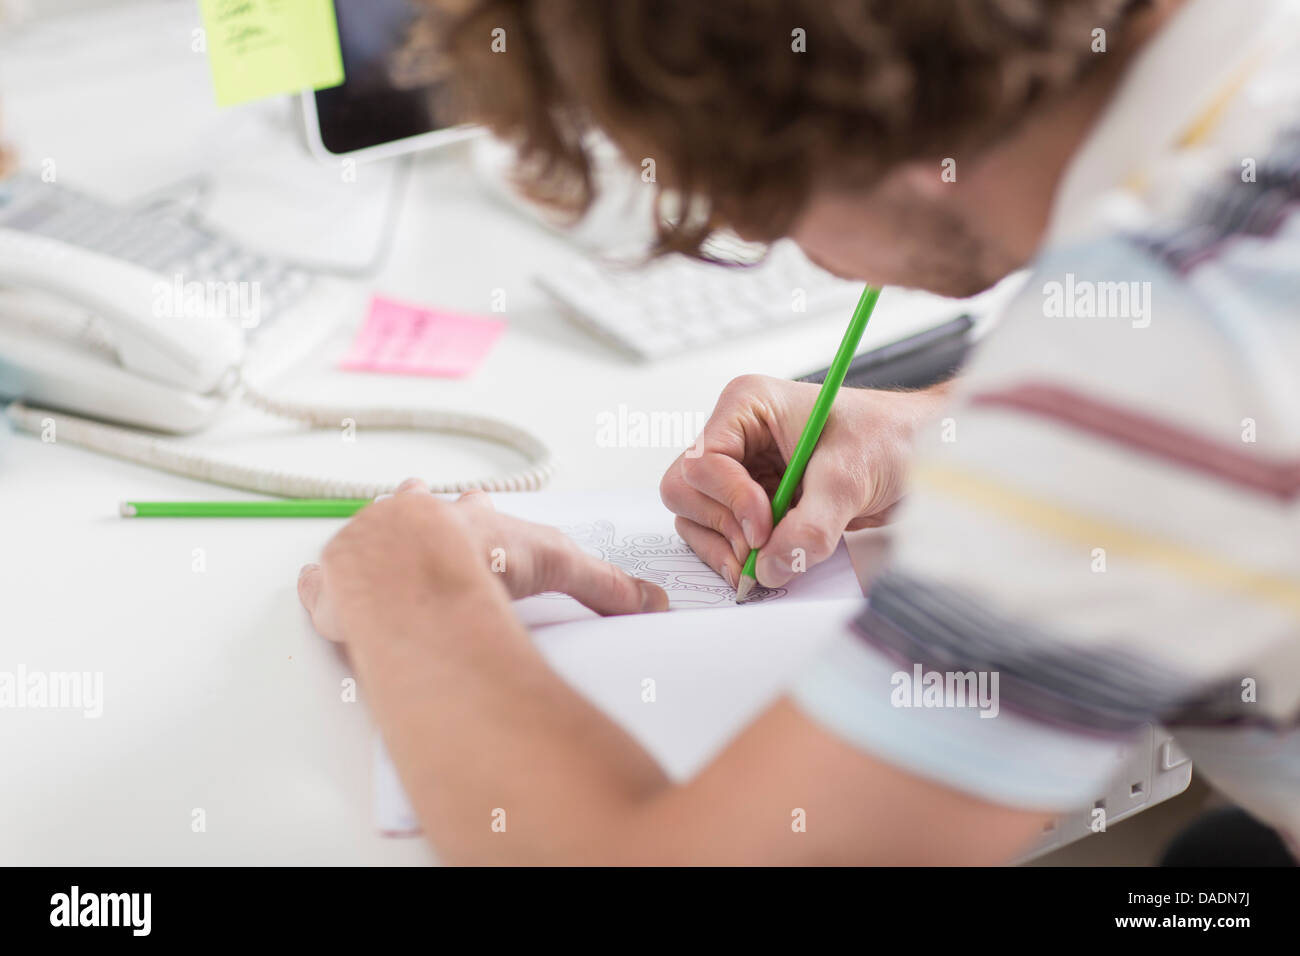 Young creative drawing plans at desk, close up - Stock Image